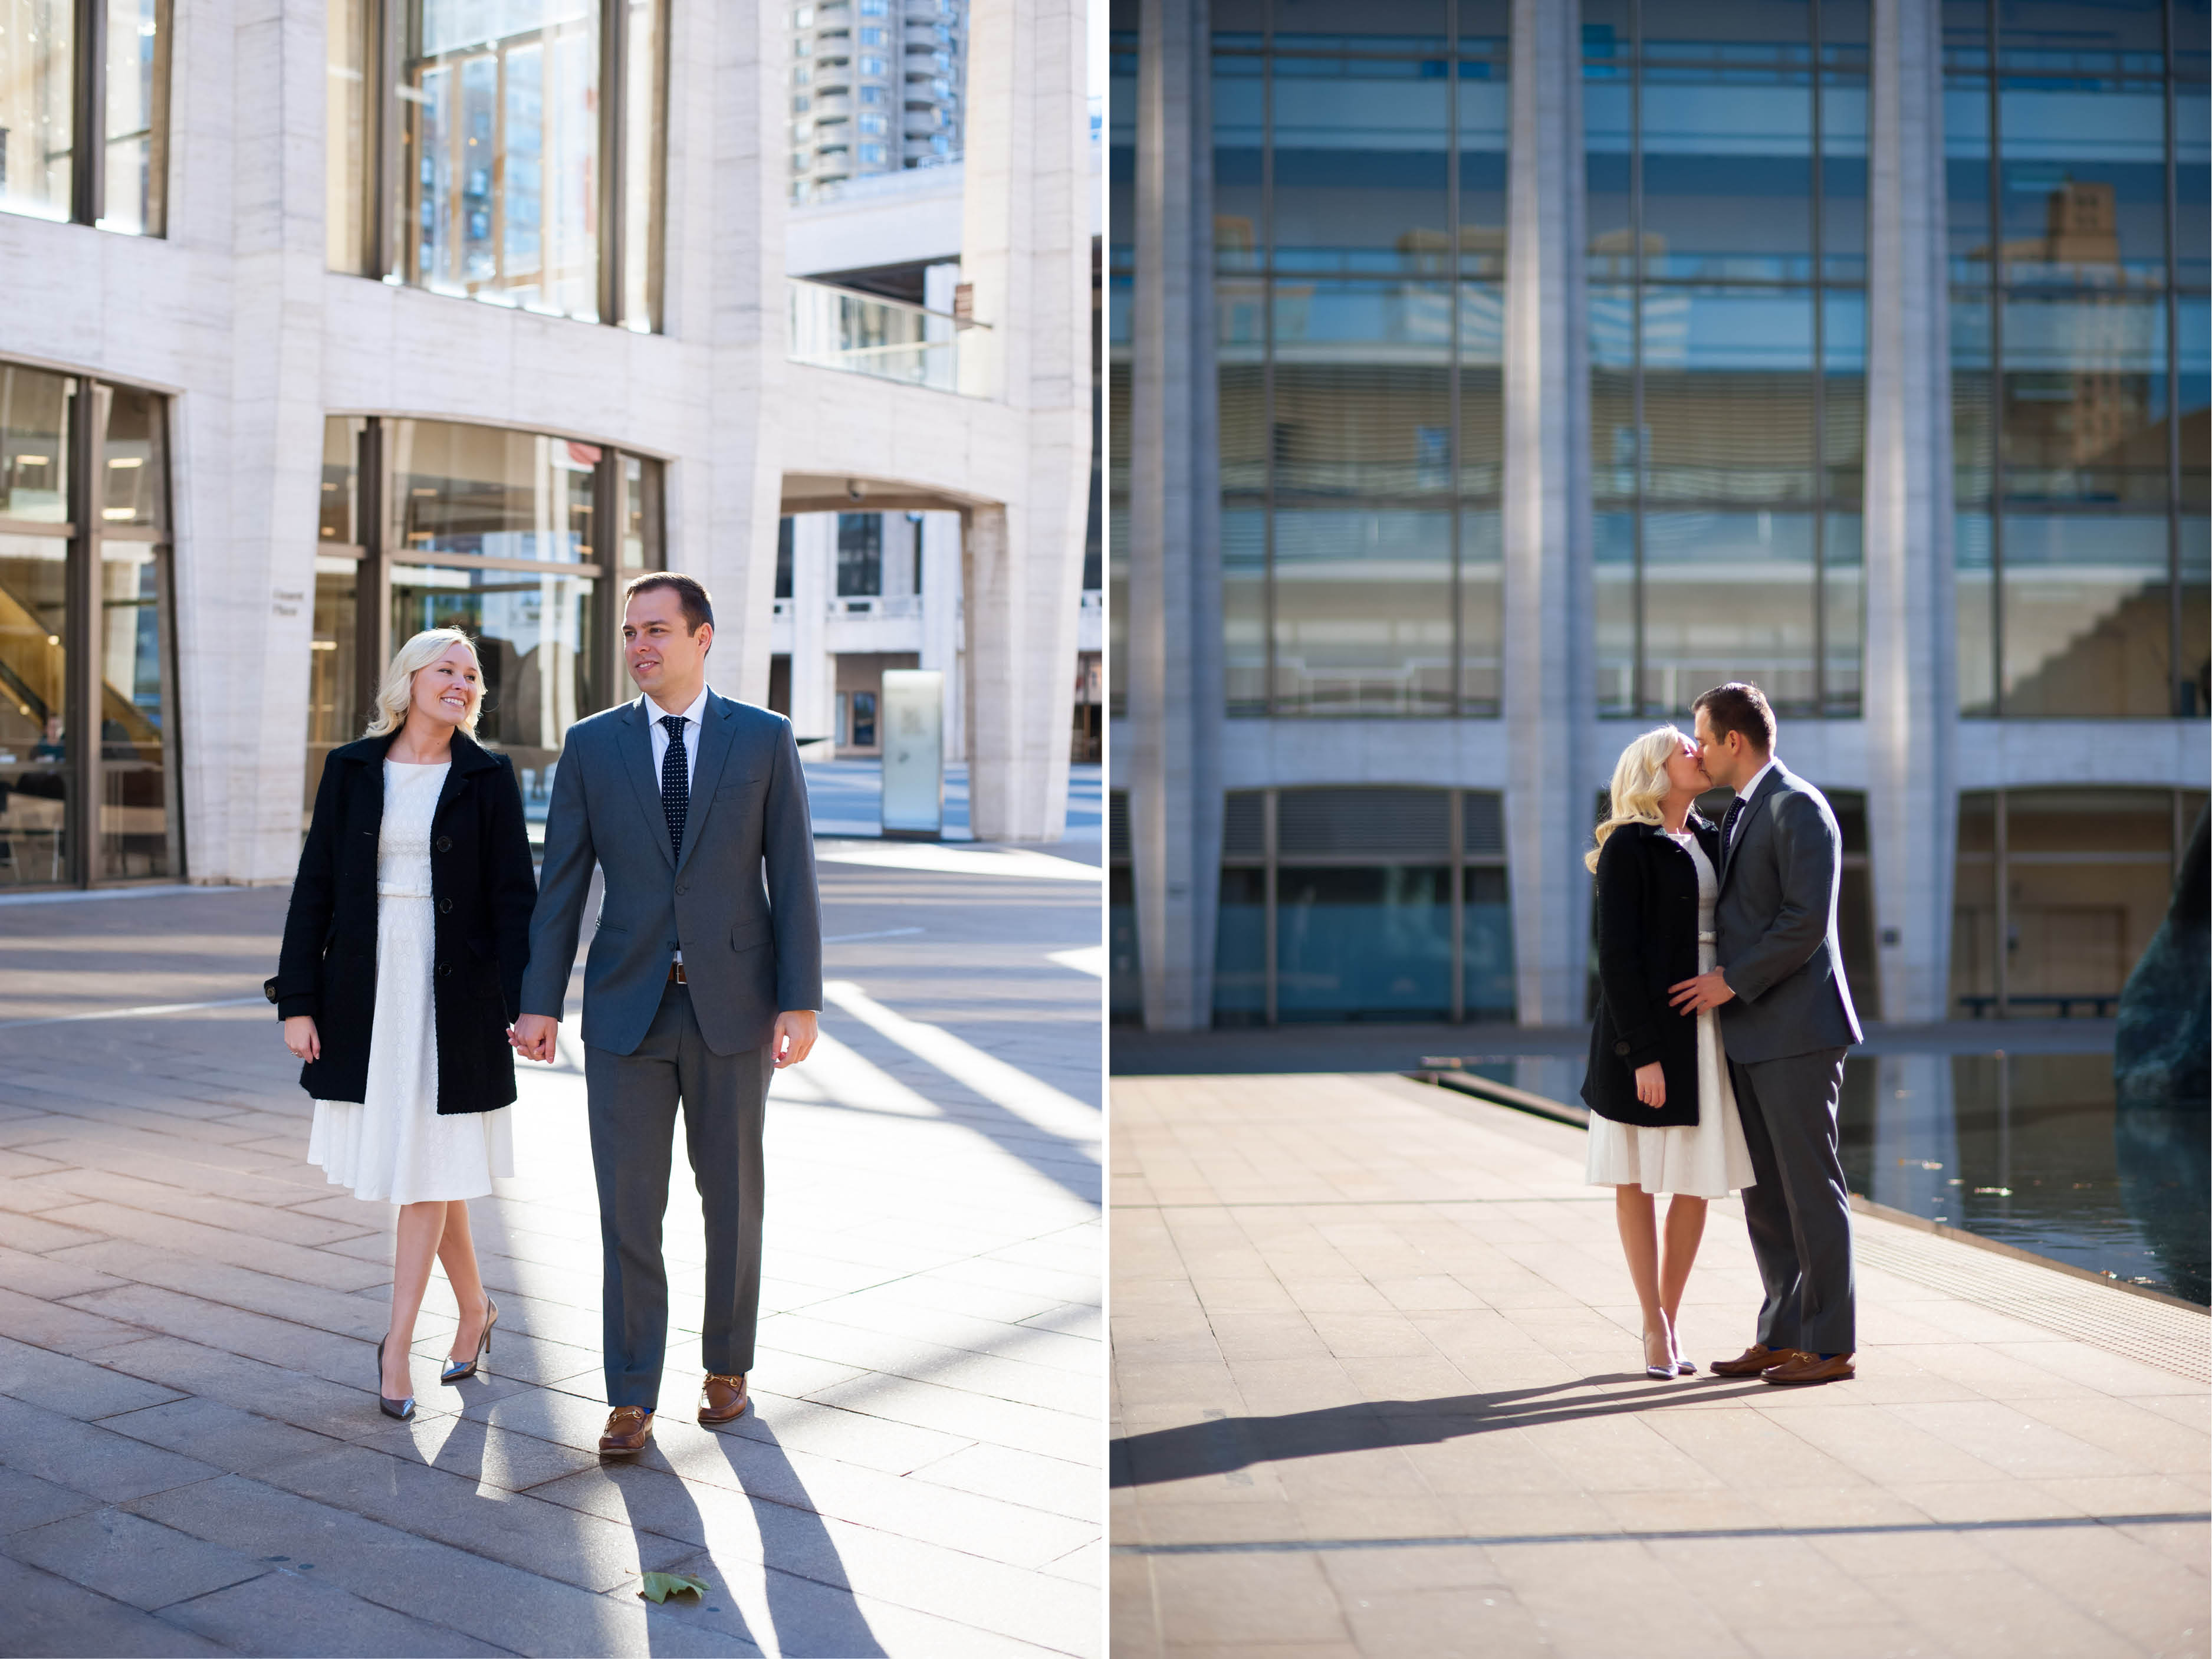 Emma_cleary_photography Lincoln center engagement shoot10